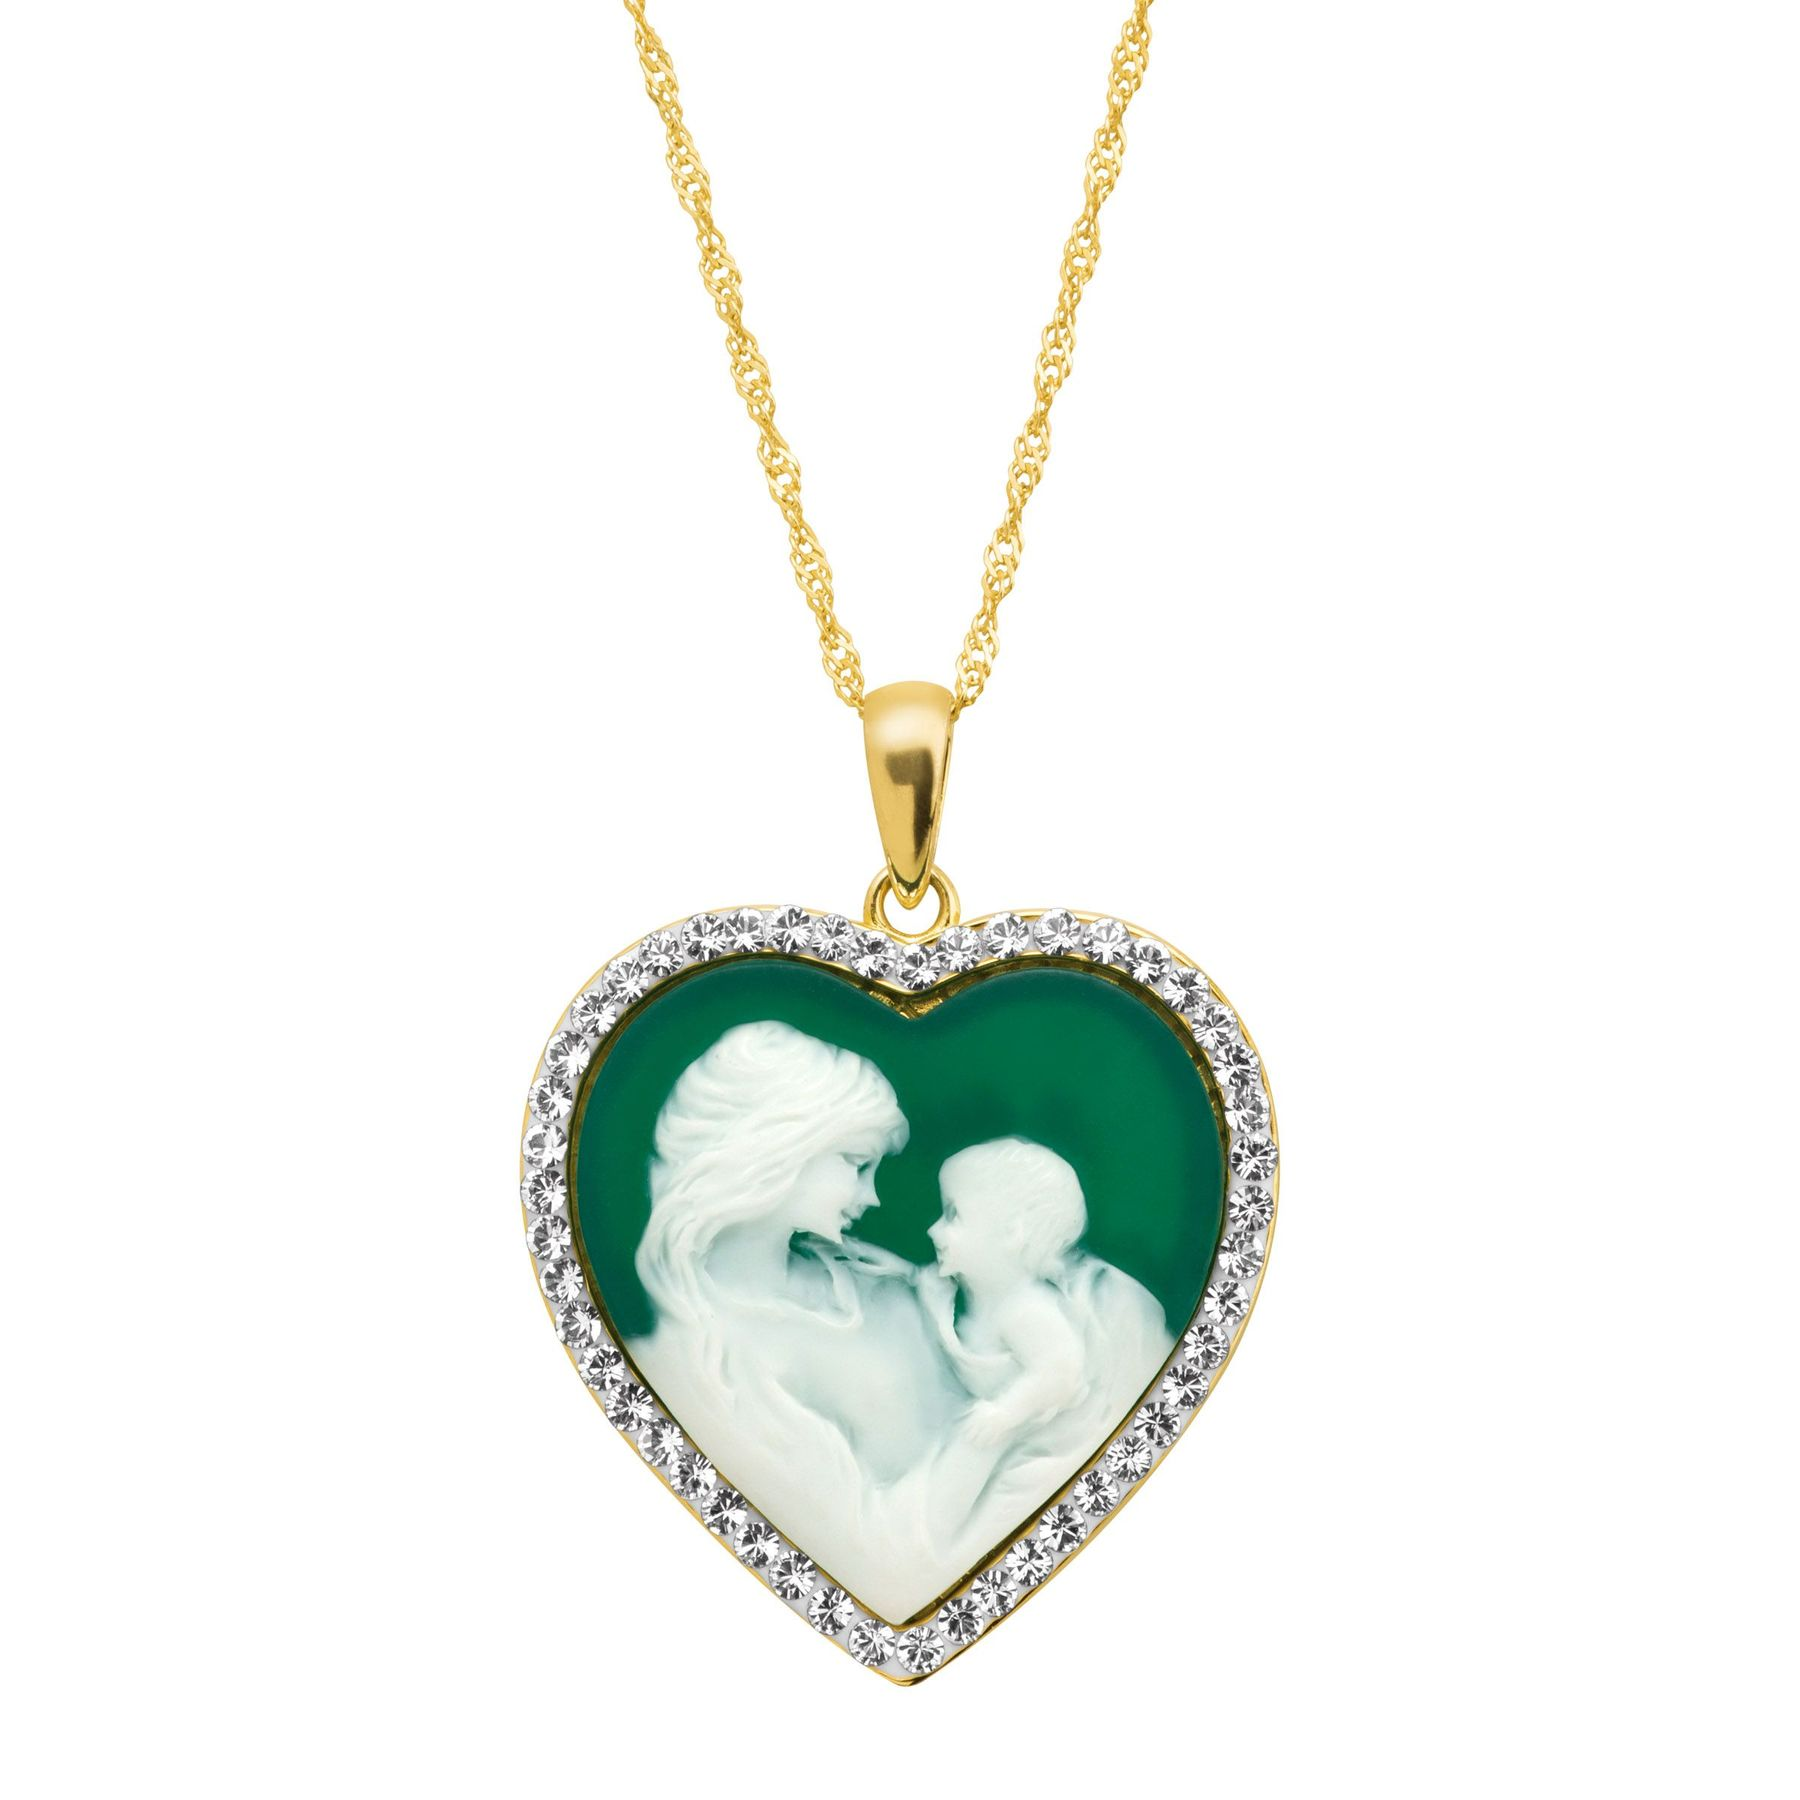 Crystaluxe mother child green inscribed heart cameo pendant with mother child heart cameo pendant with swarovski crystals aloadofball Choice Image